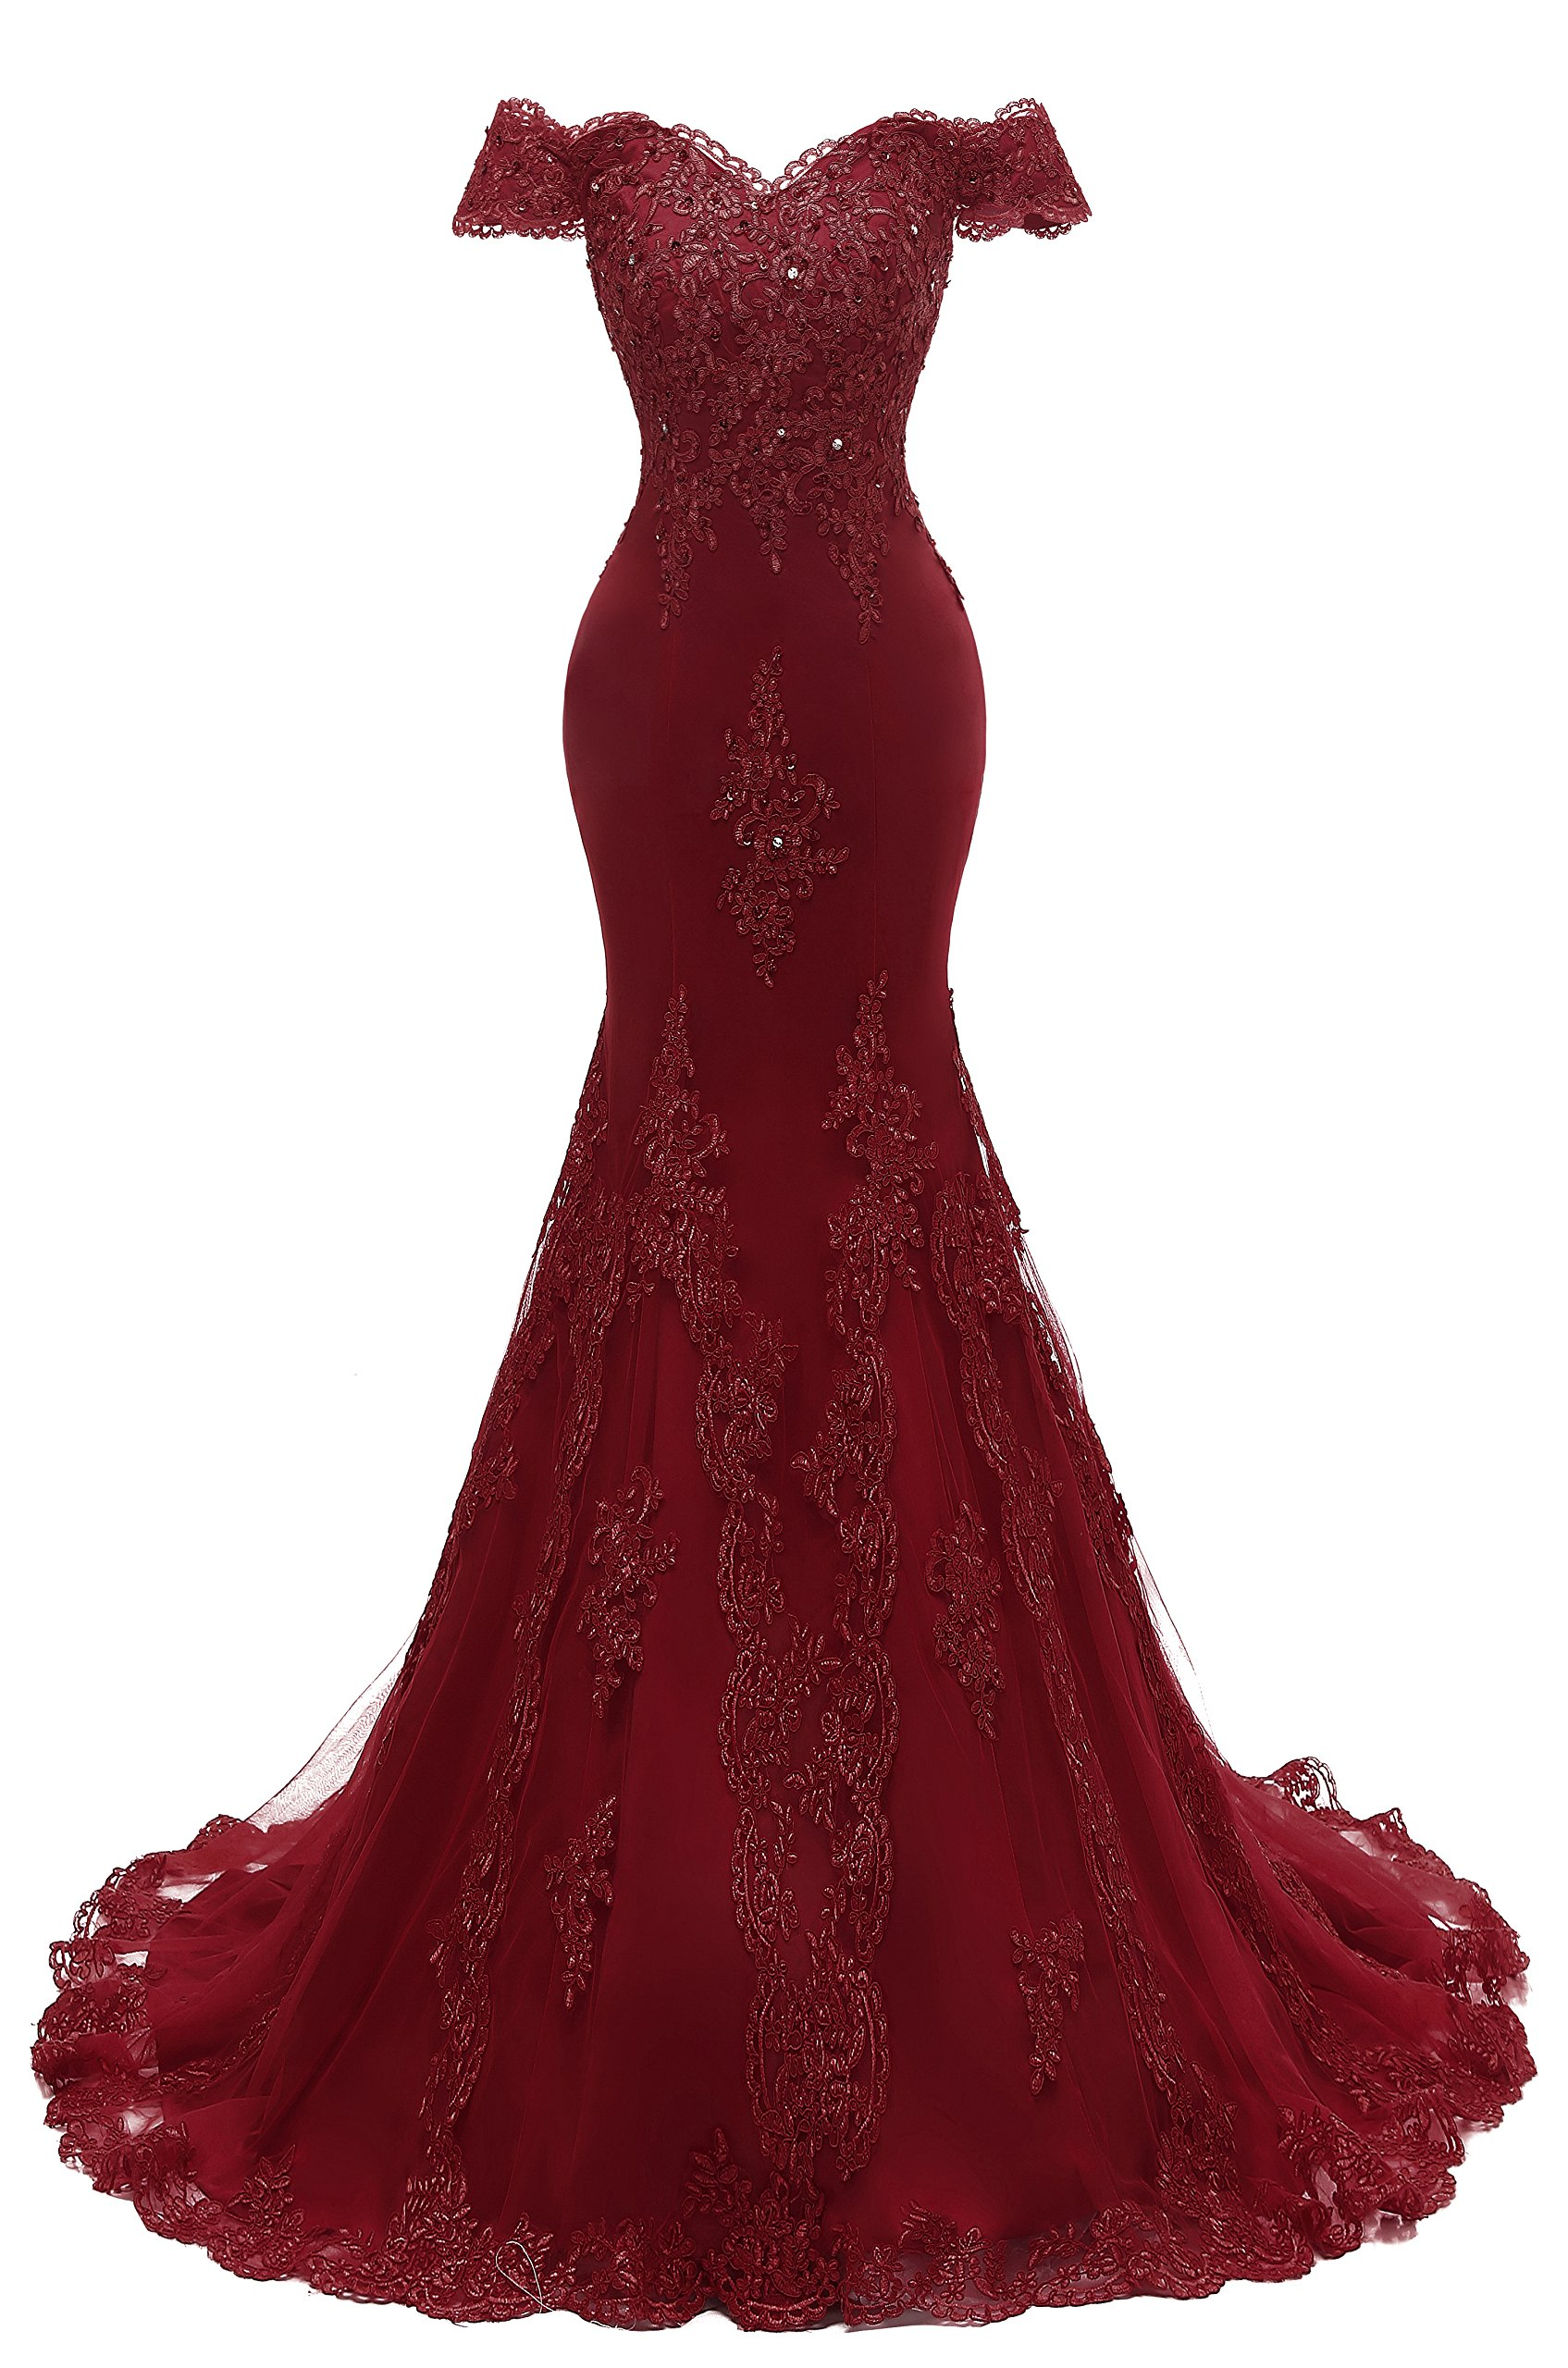 Himoda Womens V Neckline Beaded Evening Gowns Mermaid Lace Prom Dresses Long H074